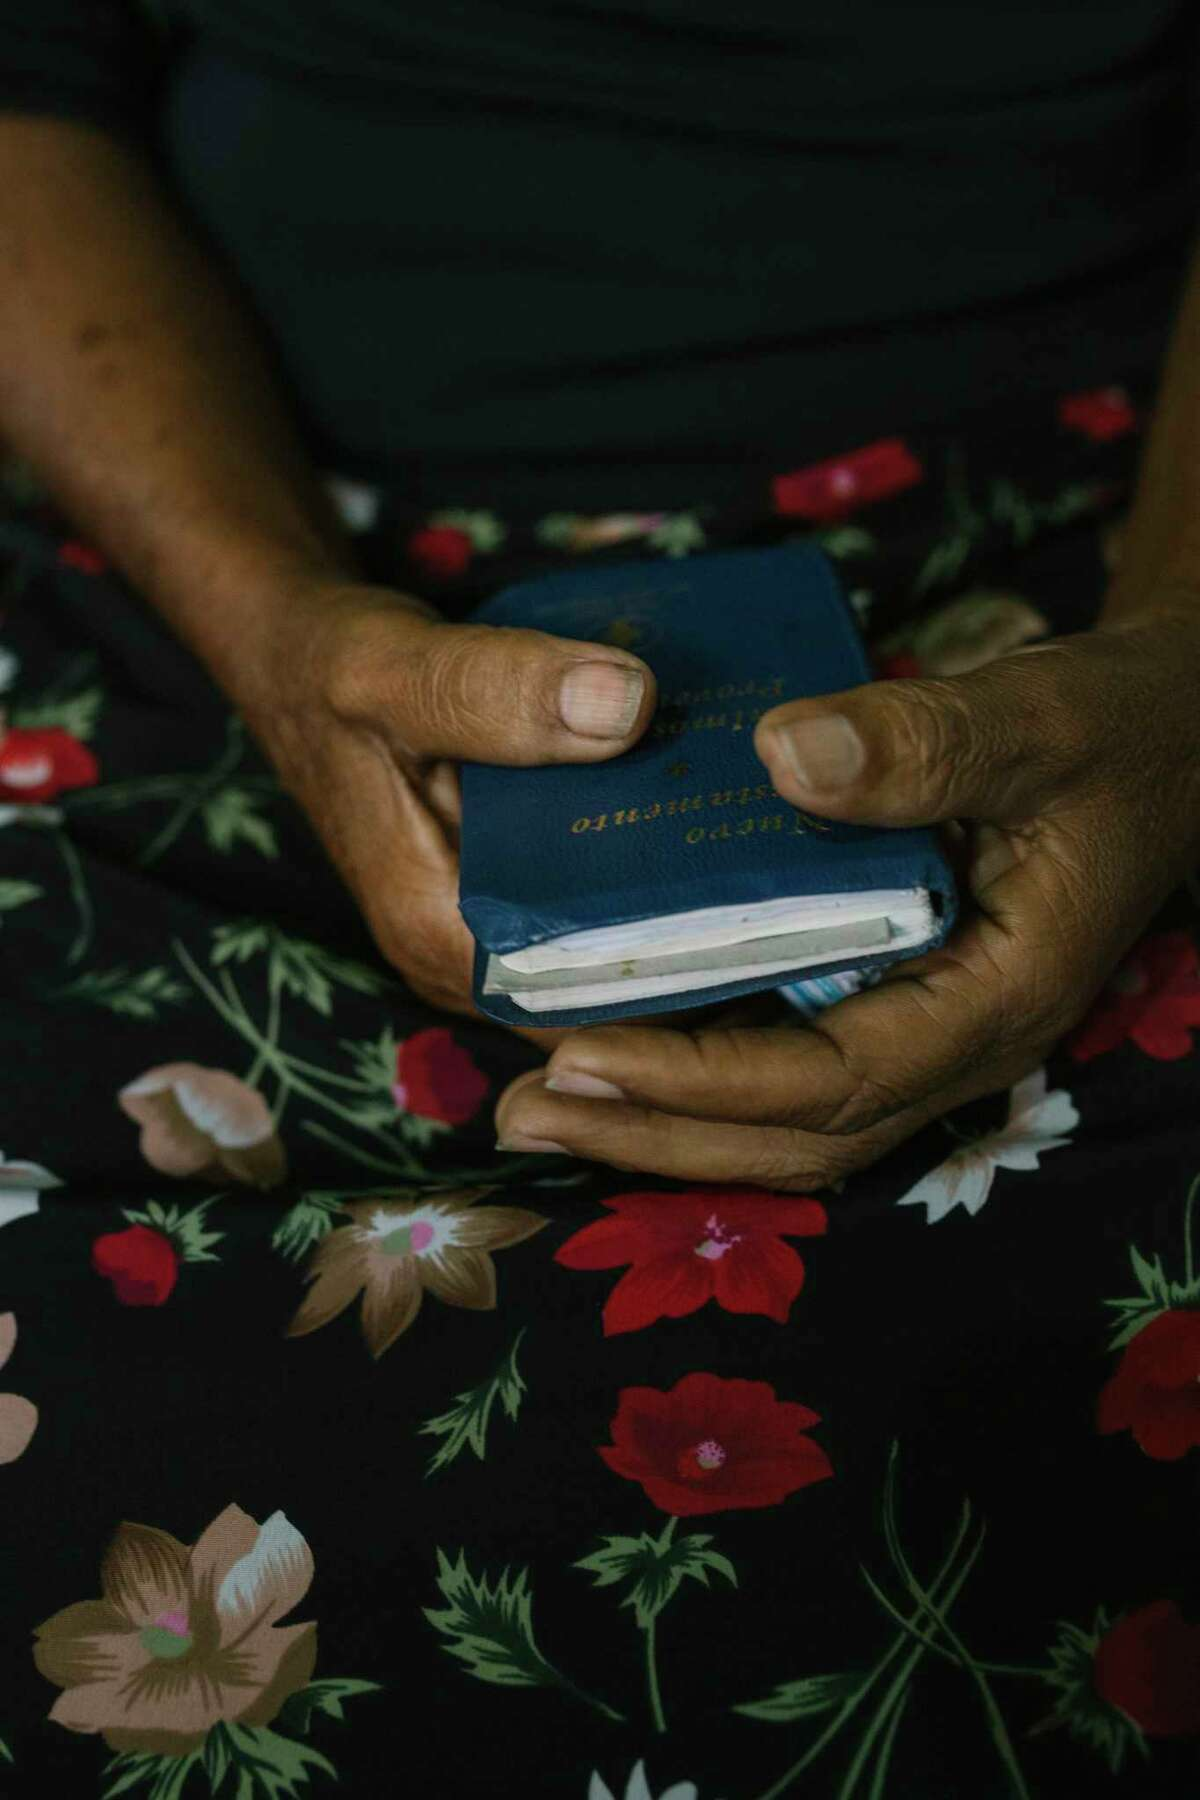 Mary Mendoza holds the New Testament as she waits for a service at an evangelical Christian church in the Caracas slum of Petare.